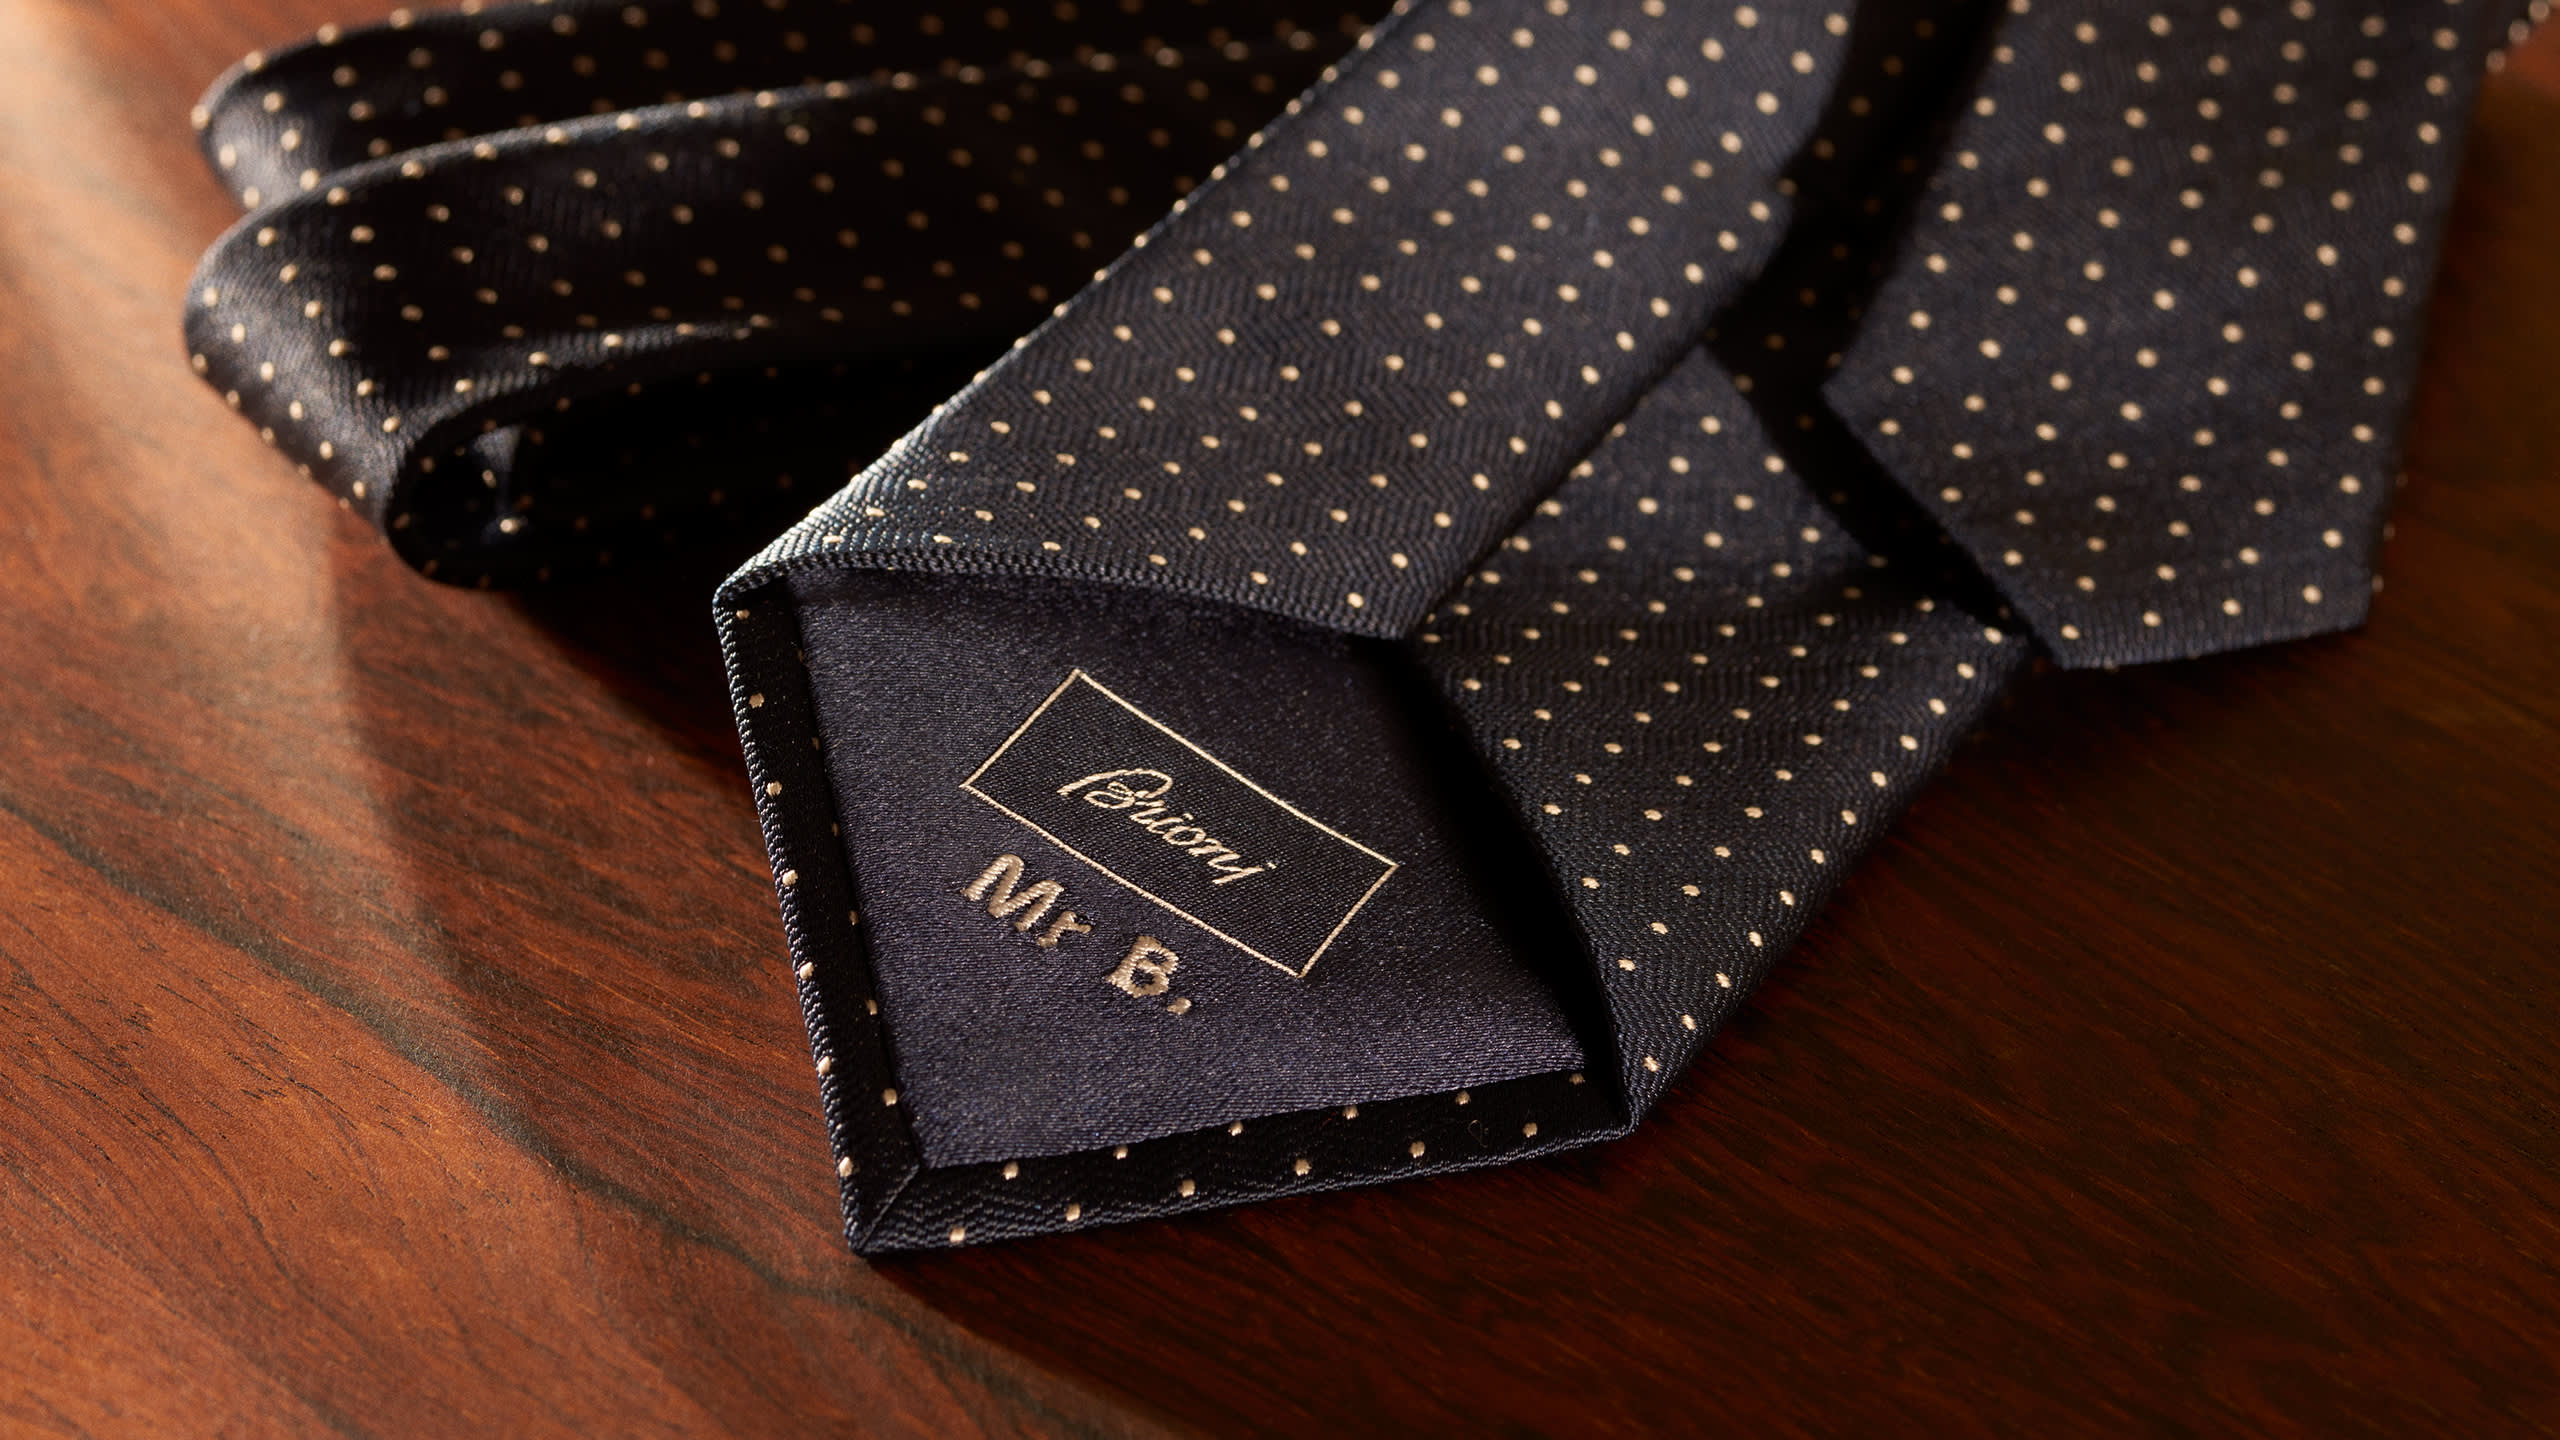 A Brioni made-to-order tie with customised monogram